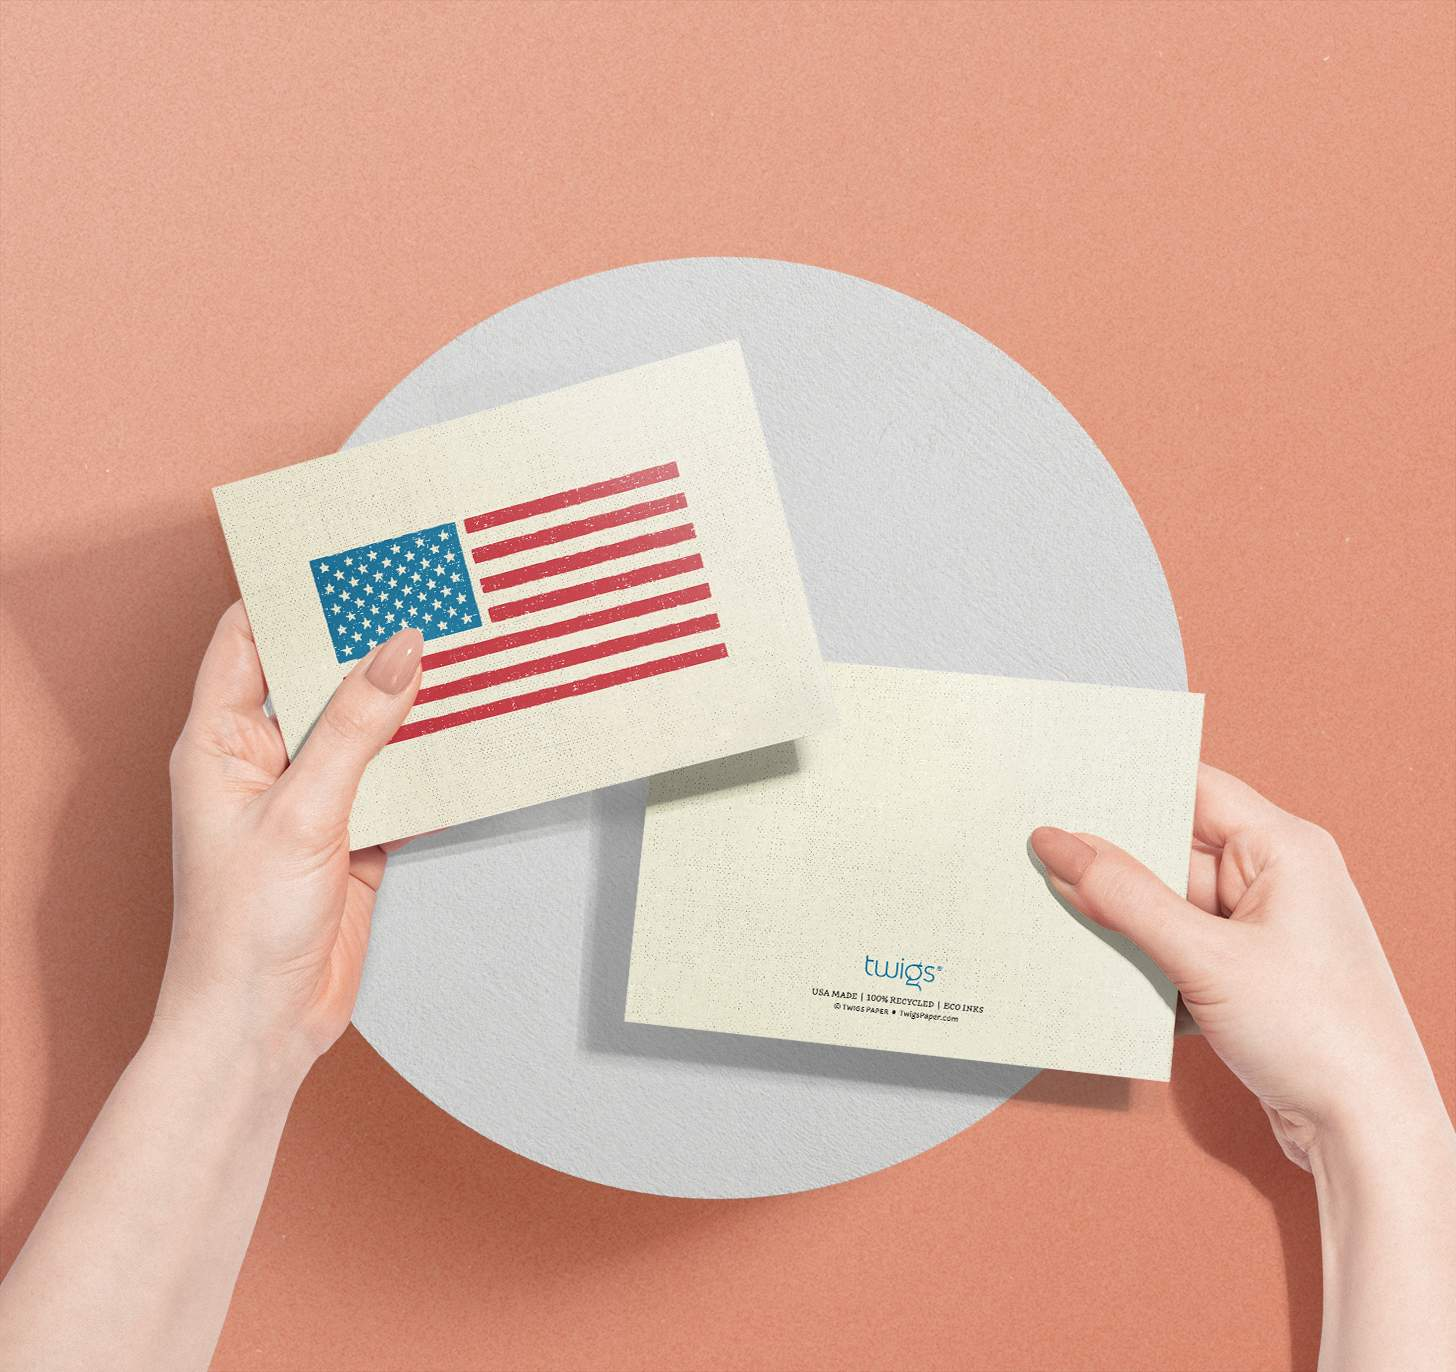 Woman holding two American flag cards showcasing the front and back